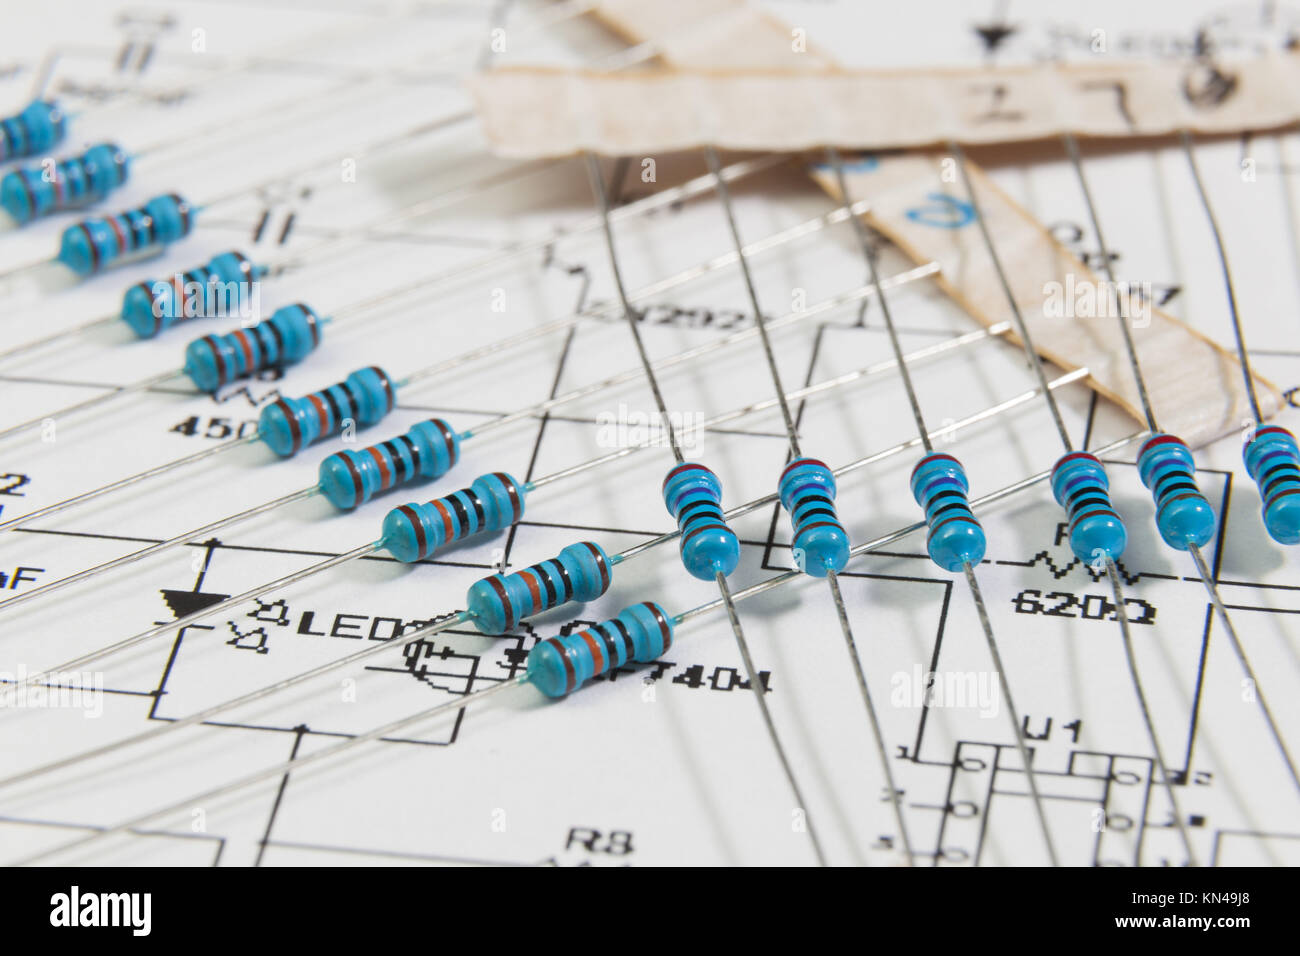 Group of electronic resistors and scheme. - Stock Image